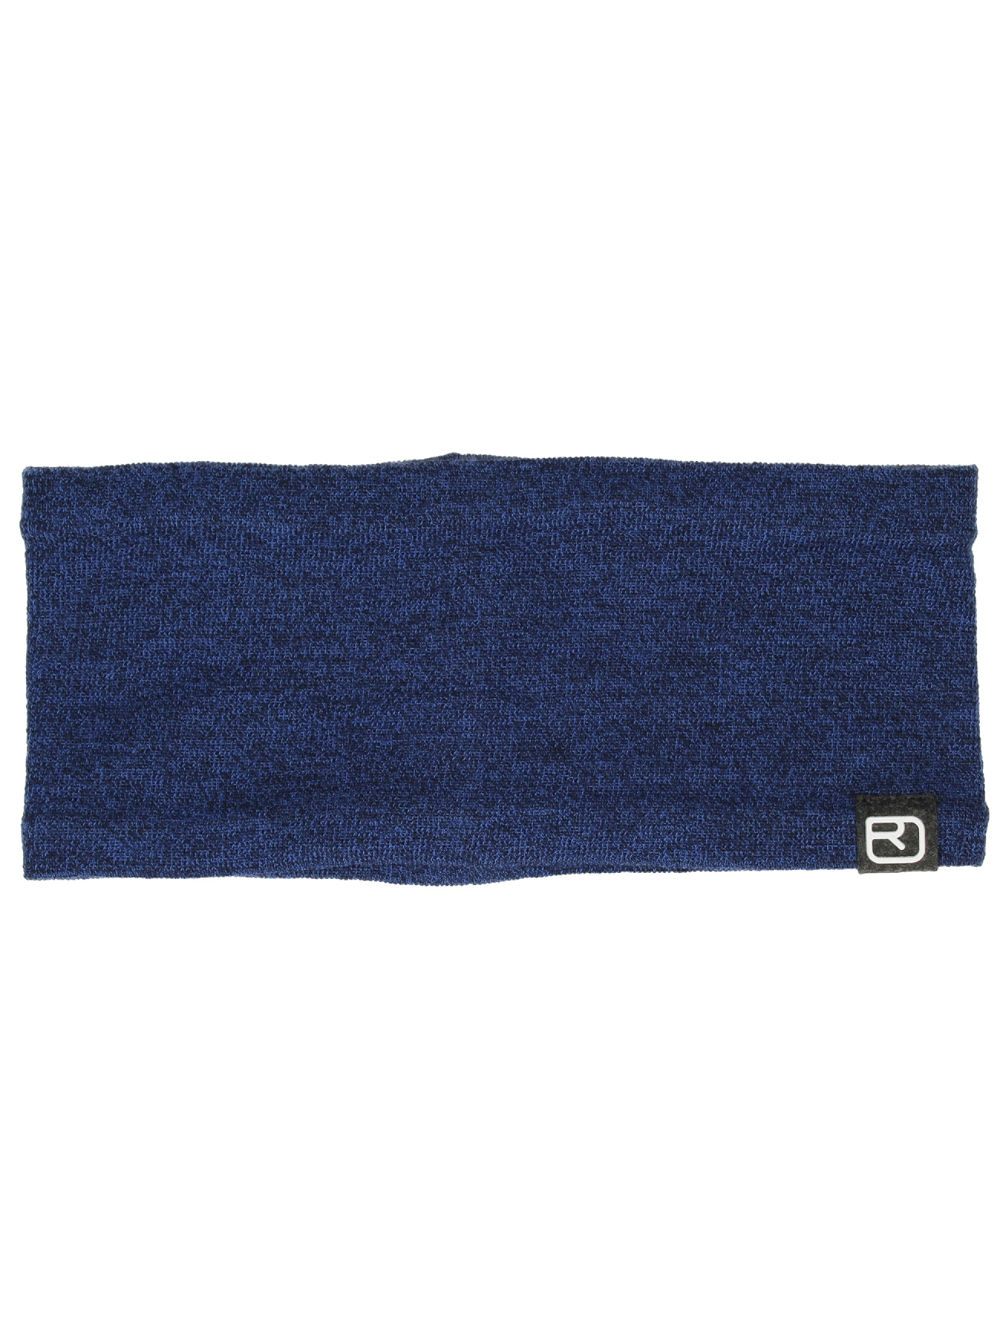 Wonderwool Stirnband